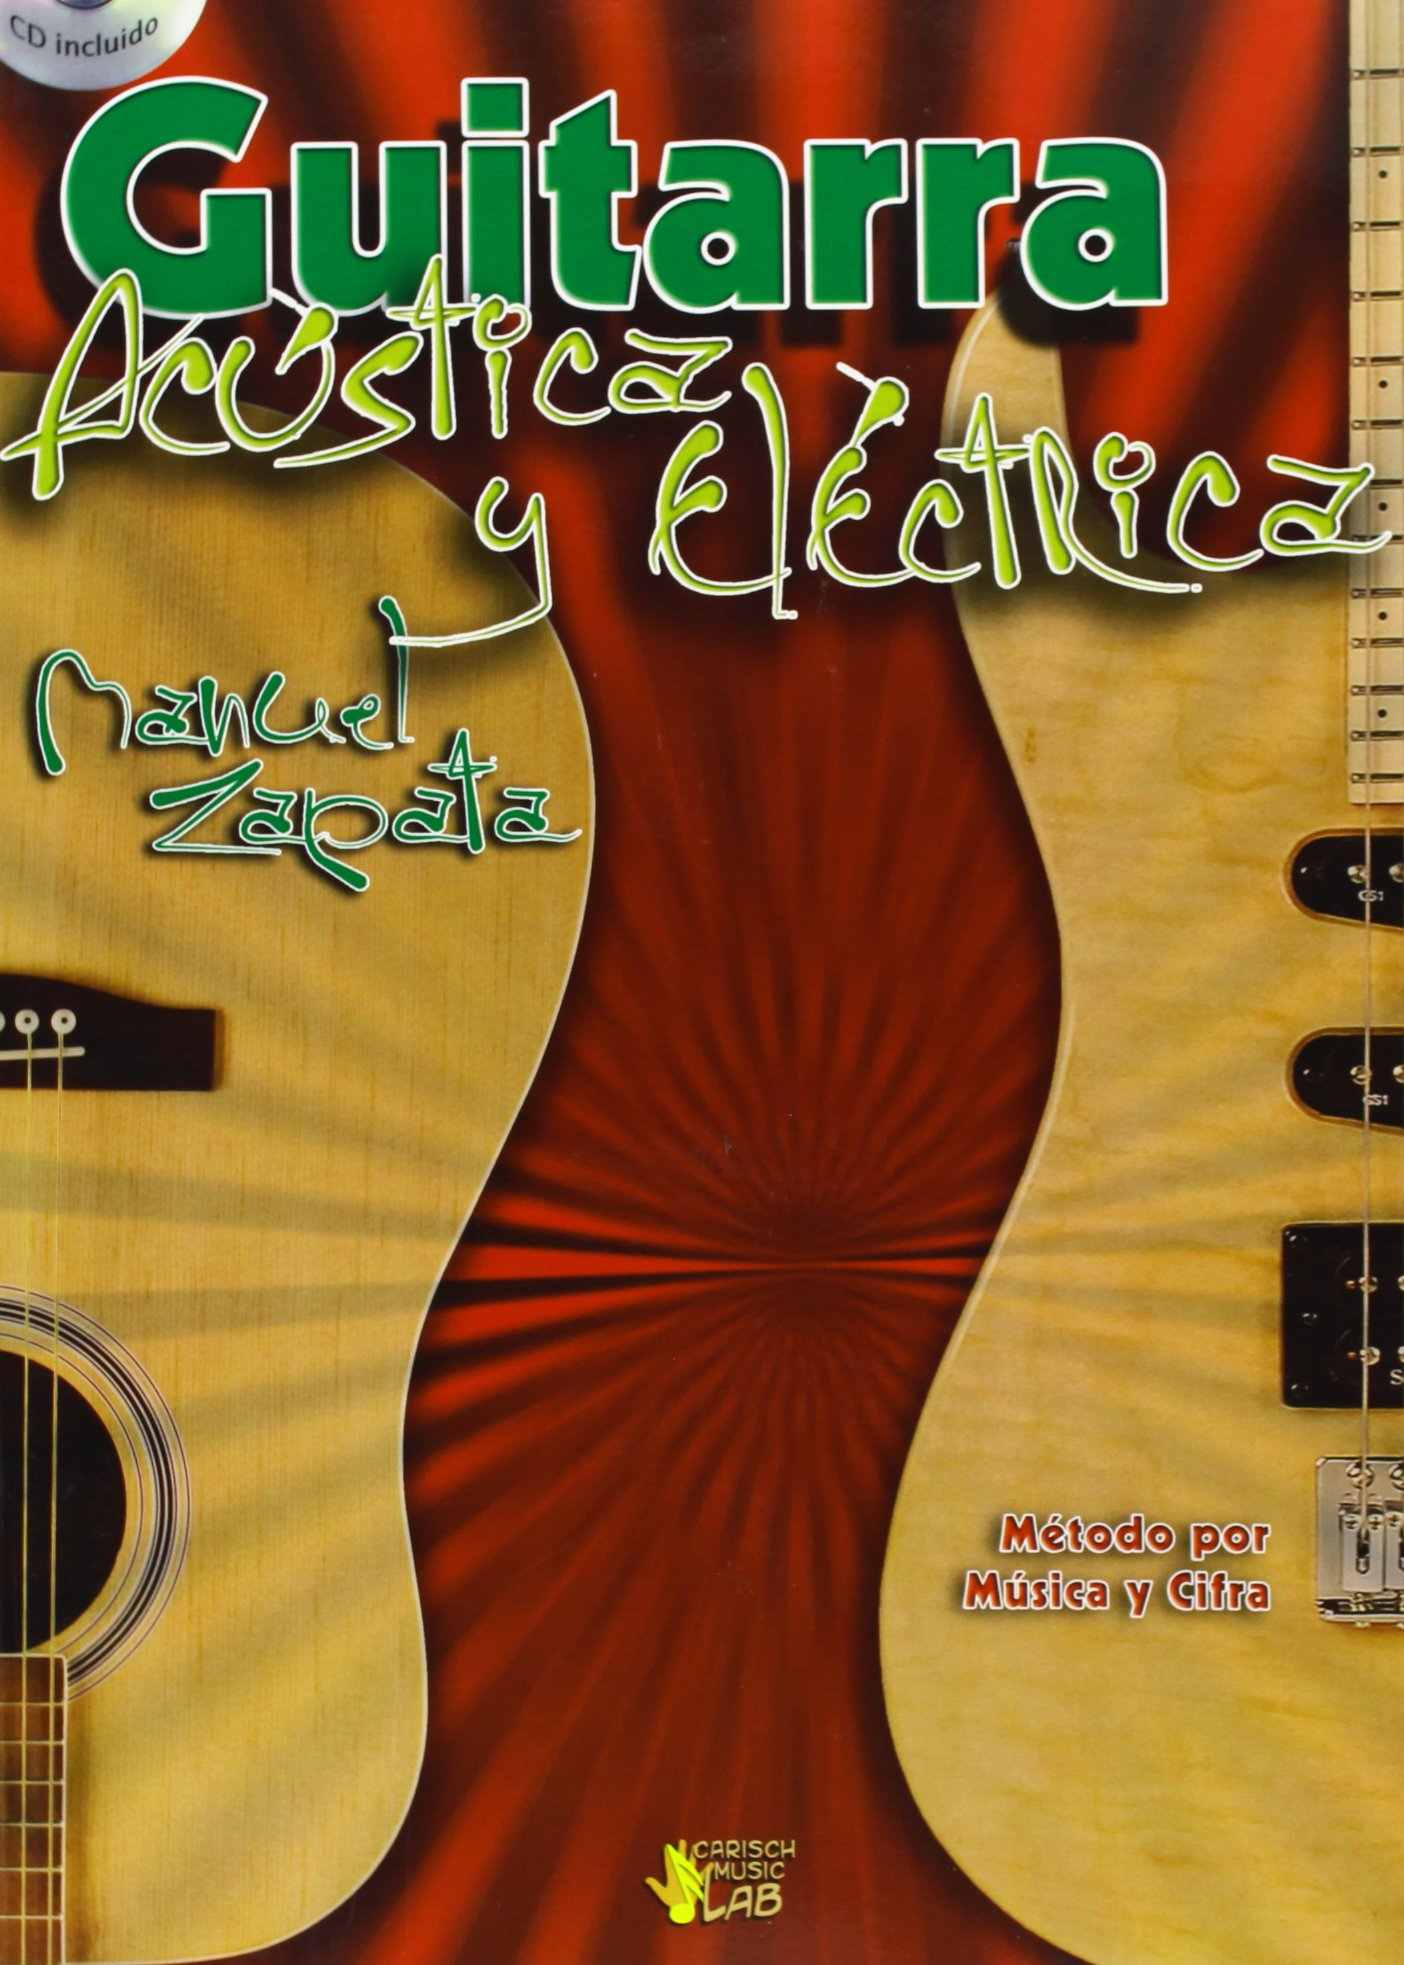 ZAPATA - Metodo para Guitarra Acustica y Electrica (Inc.CD) (Spanish) Sheet music – 2009